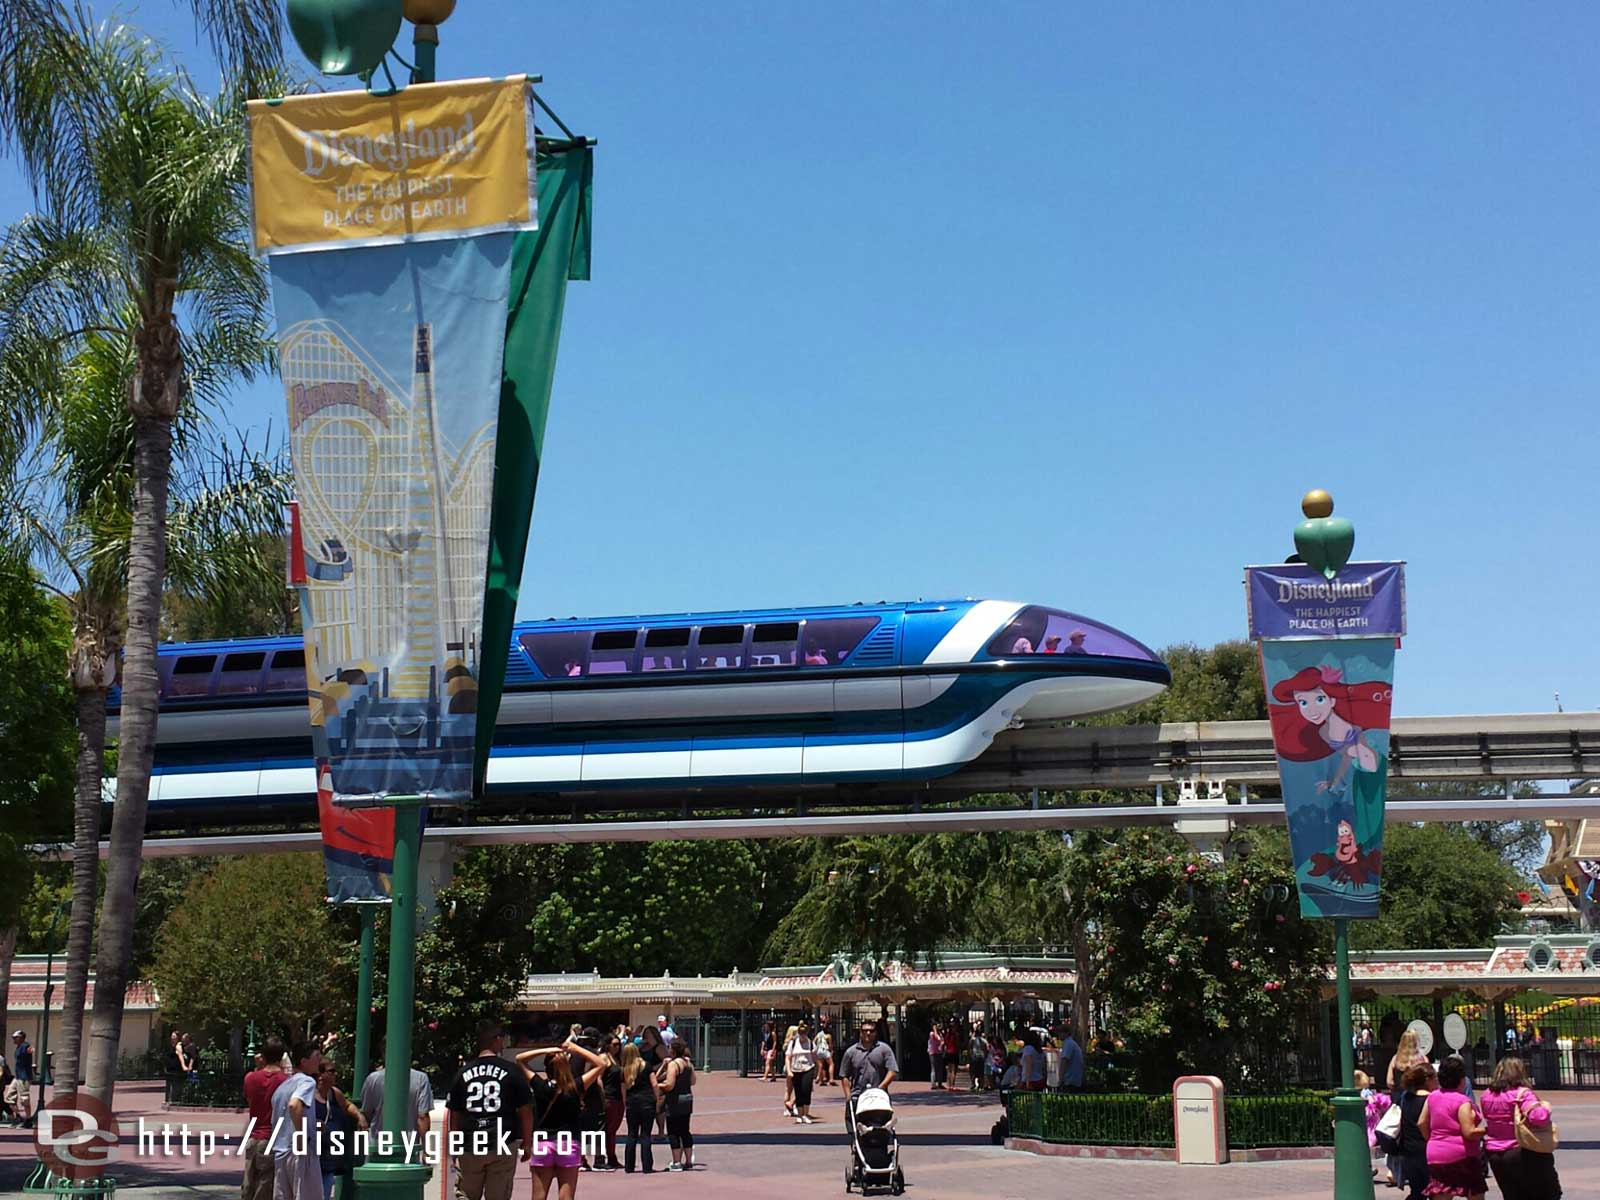 Just arrived at #Disneyland Resort. Monorail blue is currently stopped in the esplanade